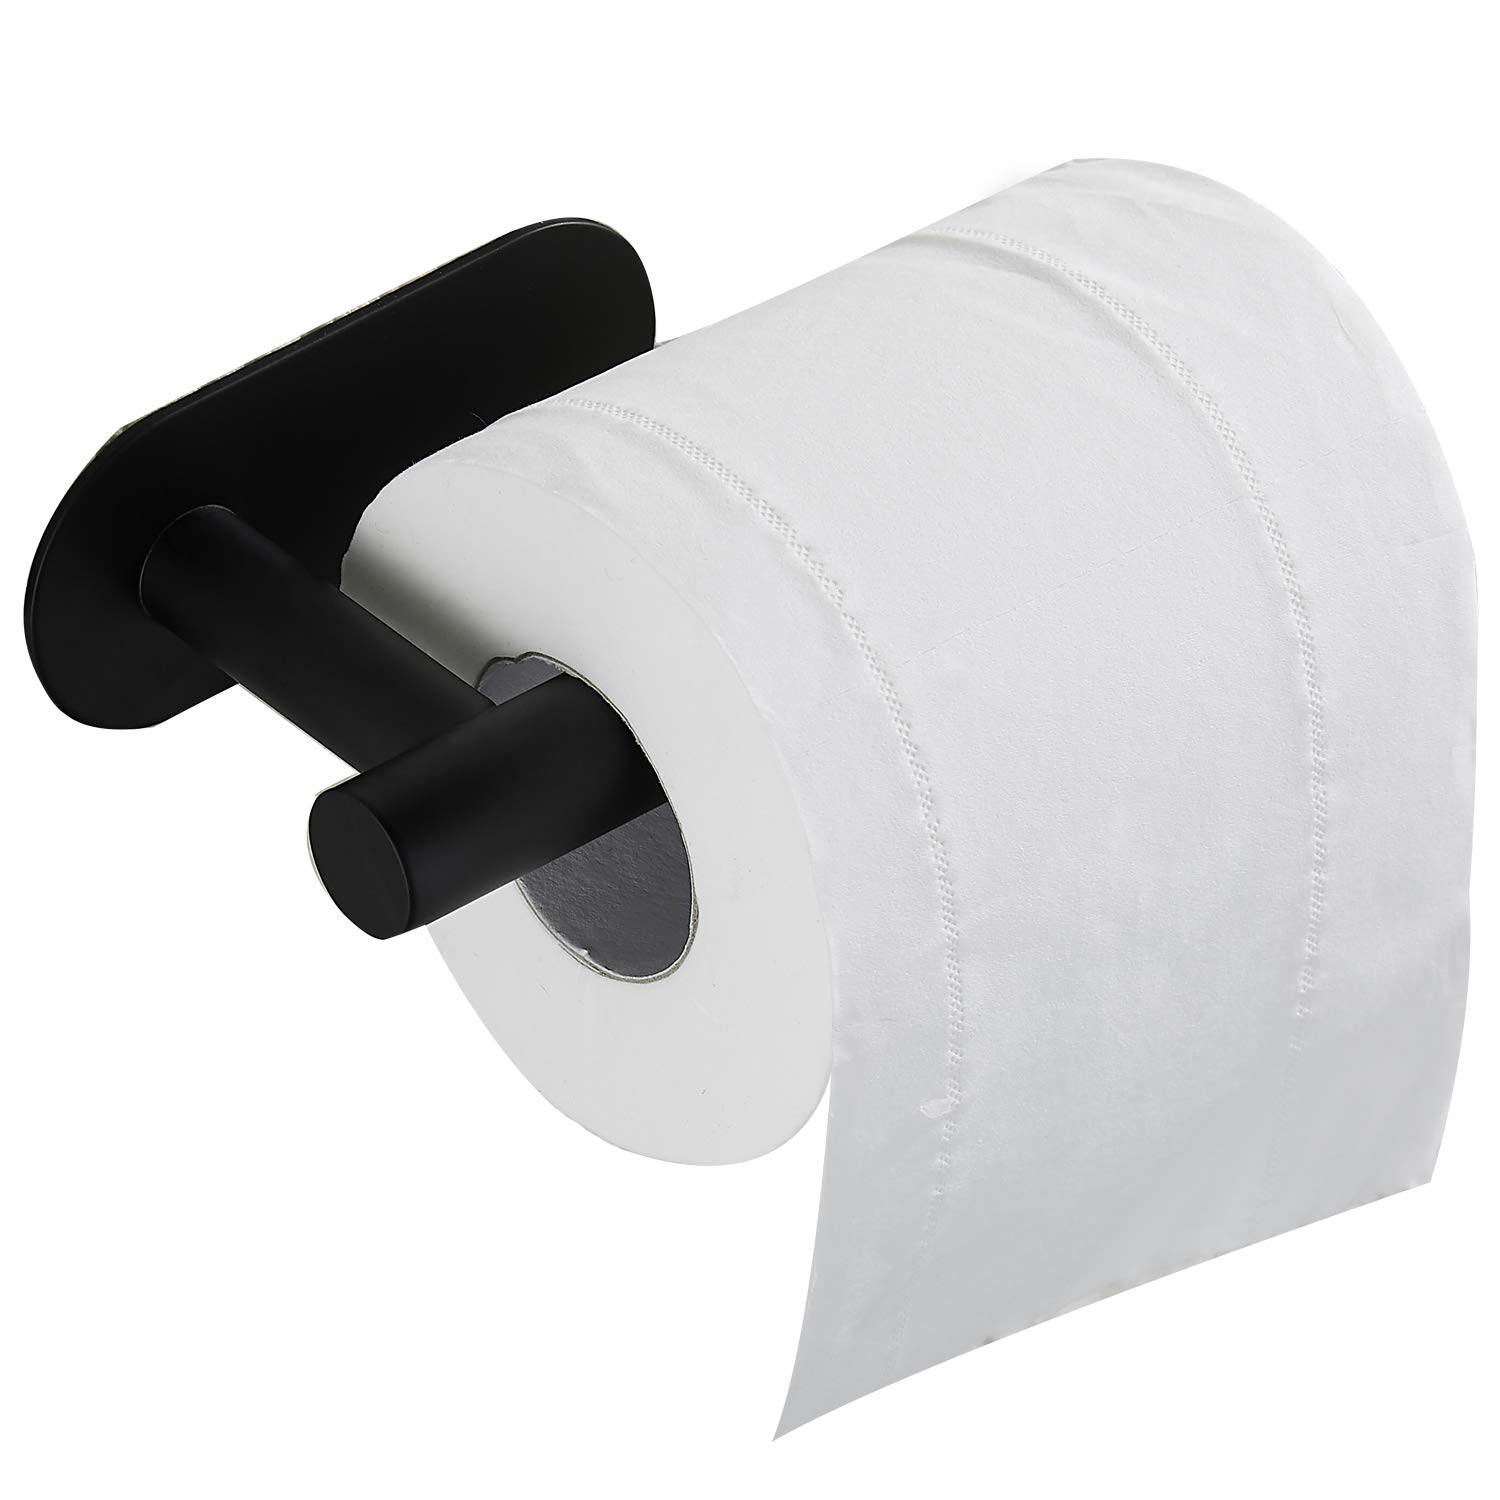 Black Or Silver Brushed Toilet Paper Holder Bathroom Kitchen No Drilling 304 Stainless Steel Tissue Holder Autohesion